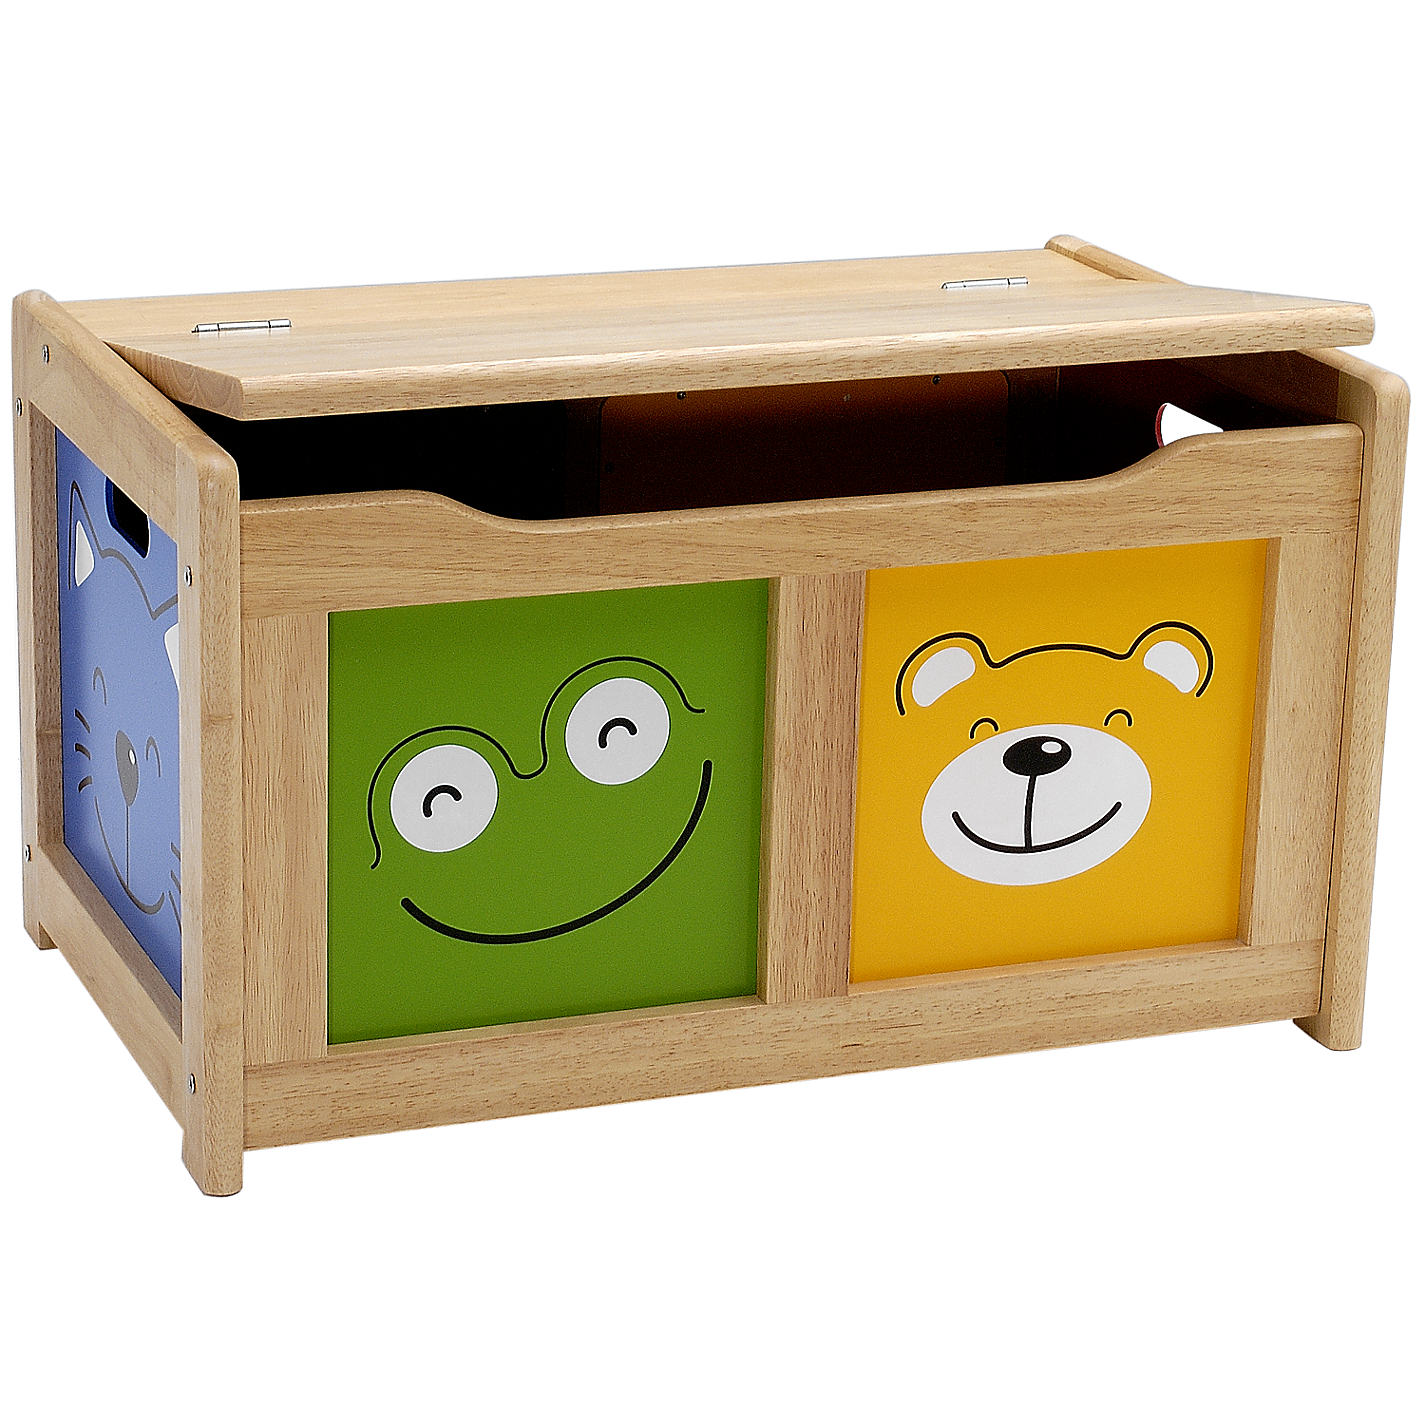 Buy John Crane Four Friends Toy Chest